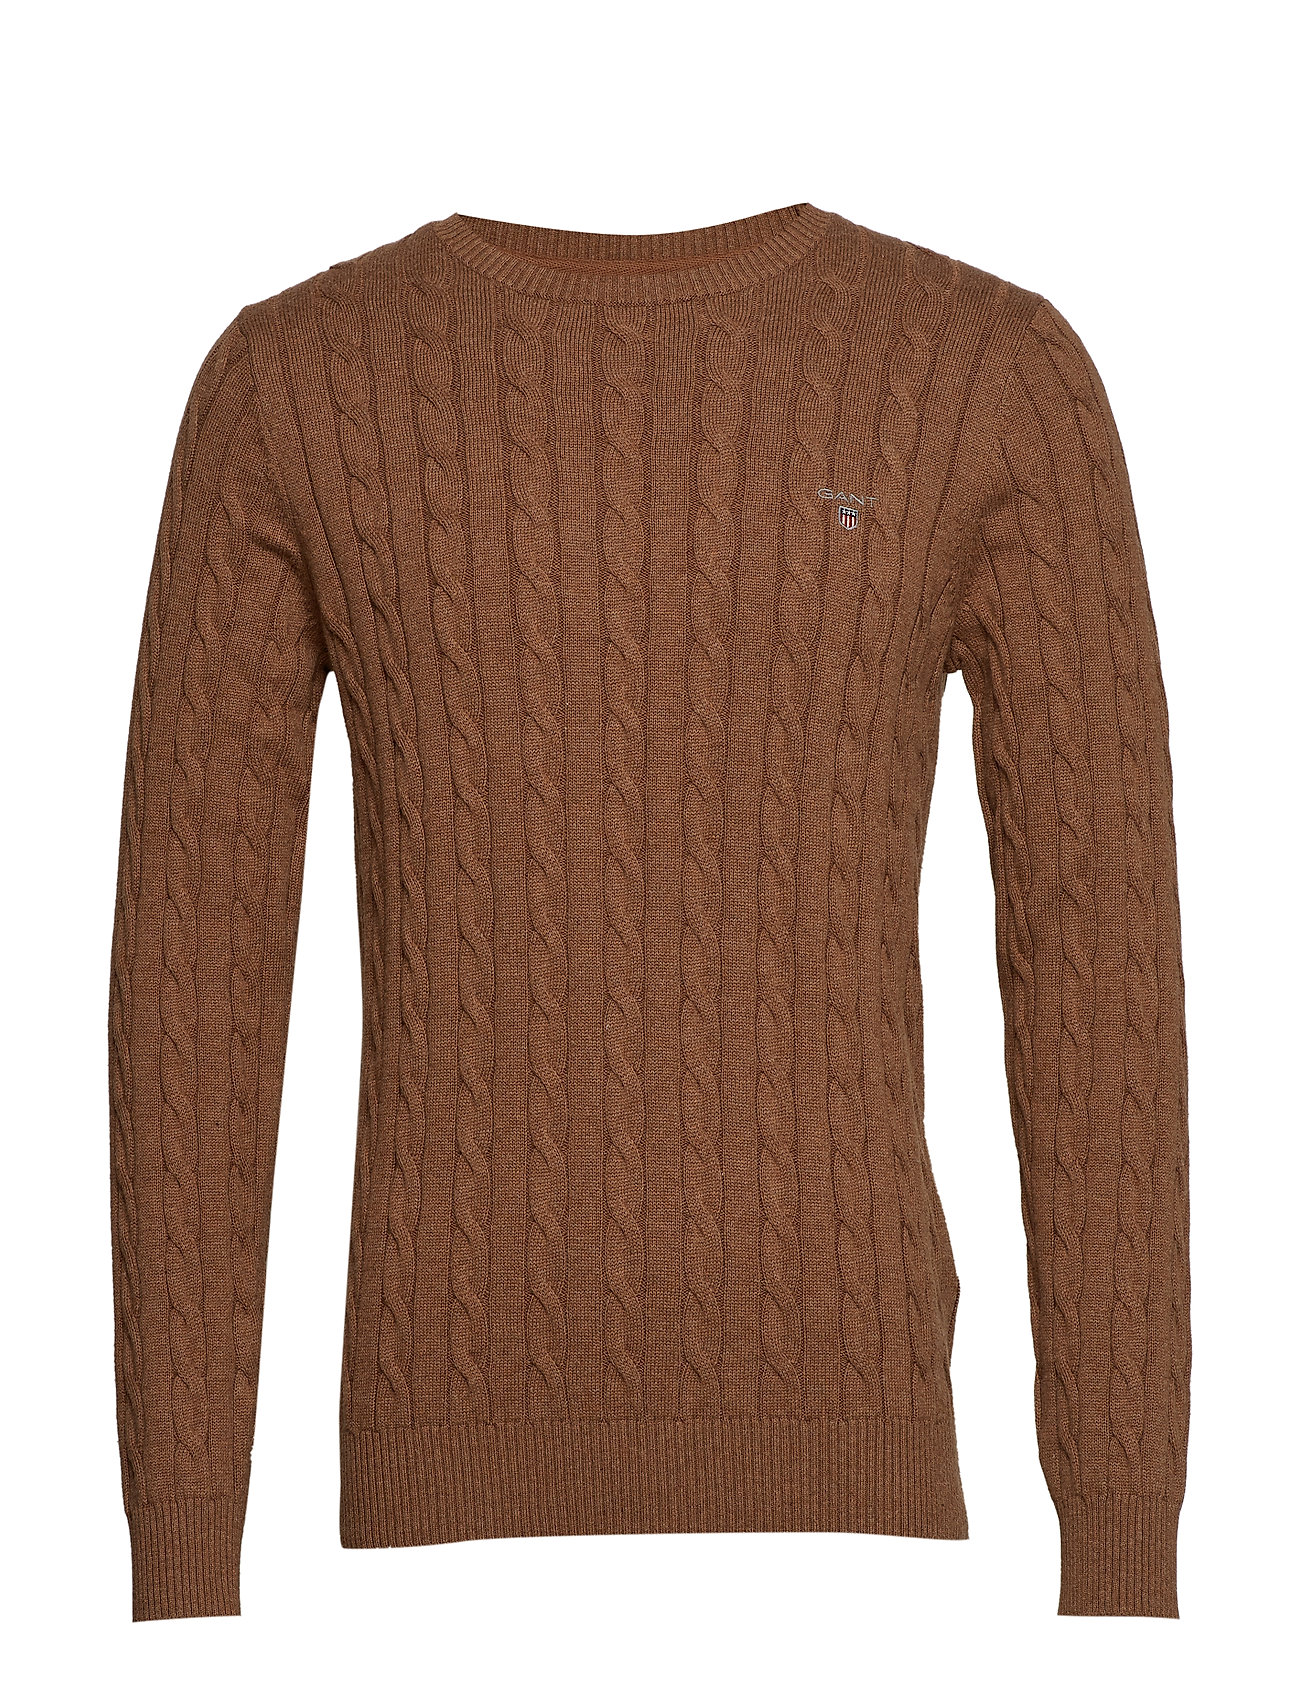 Gant COTTON CABLE CREW - HAZELNUT MELANGE